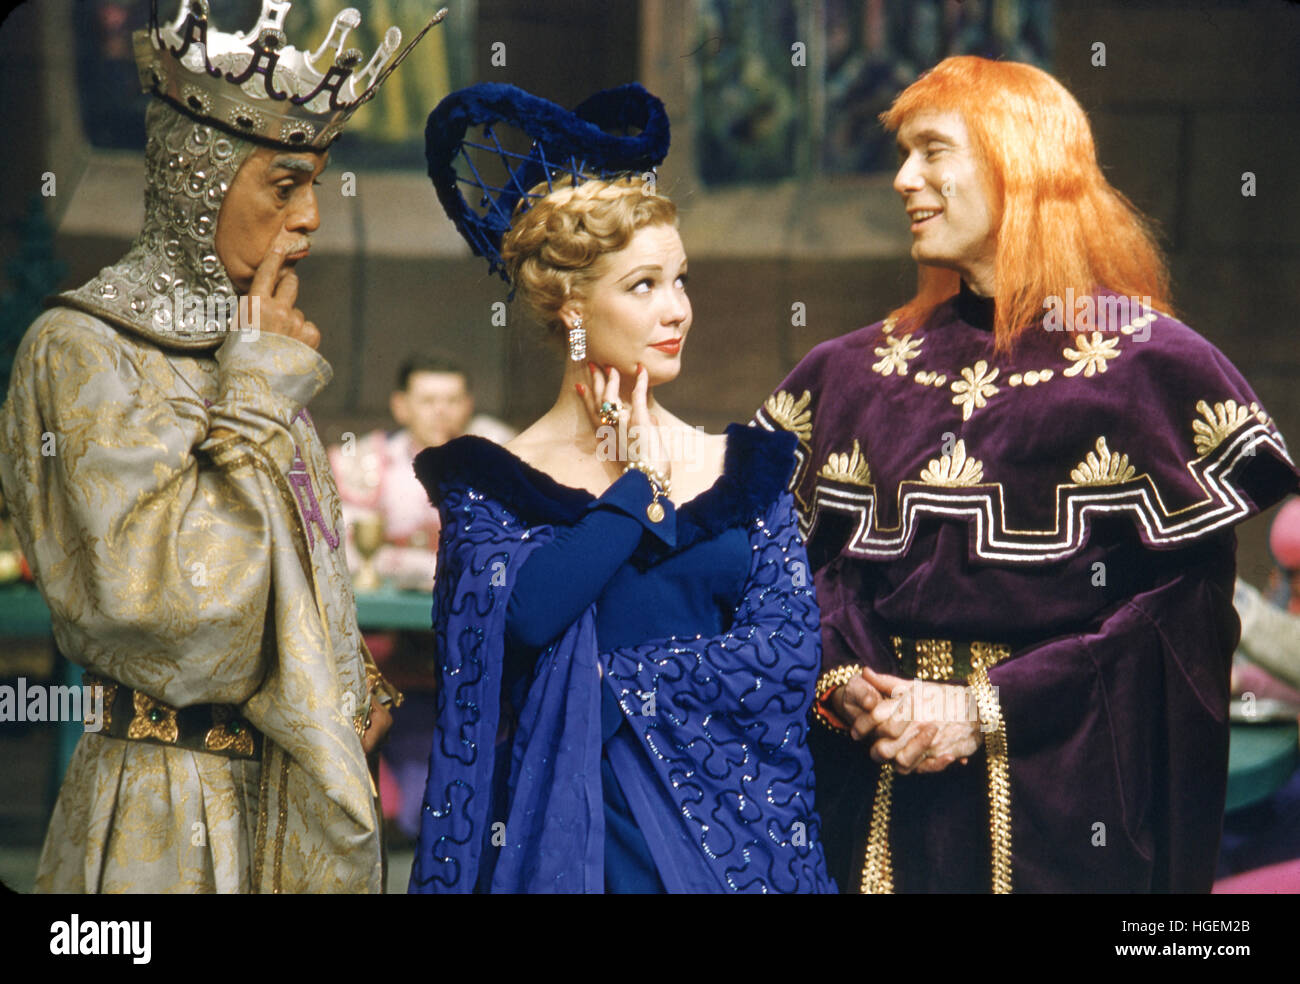 Boris Karloff, Gale Sherwood, and Leonard Elliott, in the 1955 production of A Connecticut Yankee in King Arthur's - Stock Image